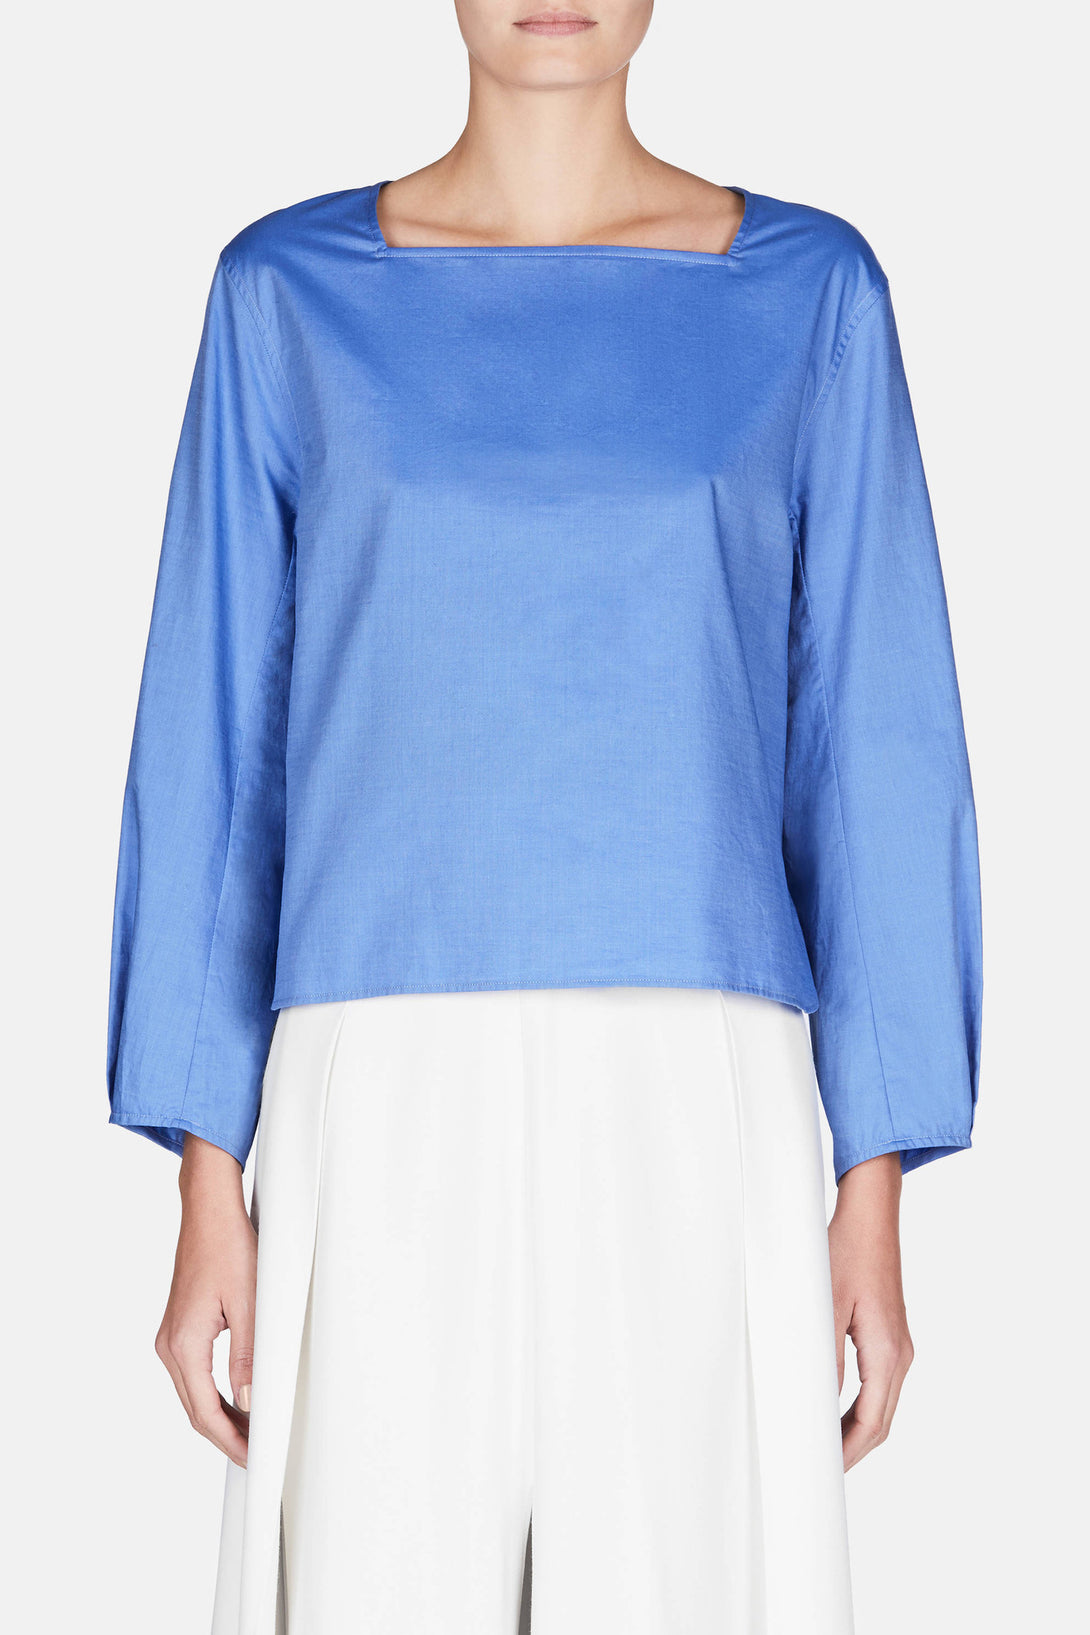 Phoebe Top - Blue